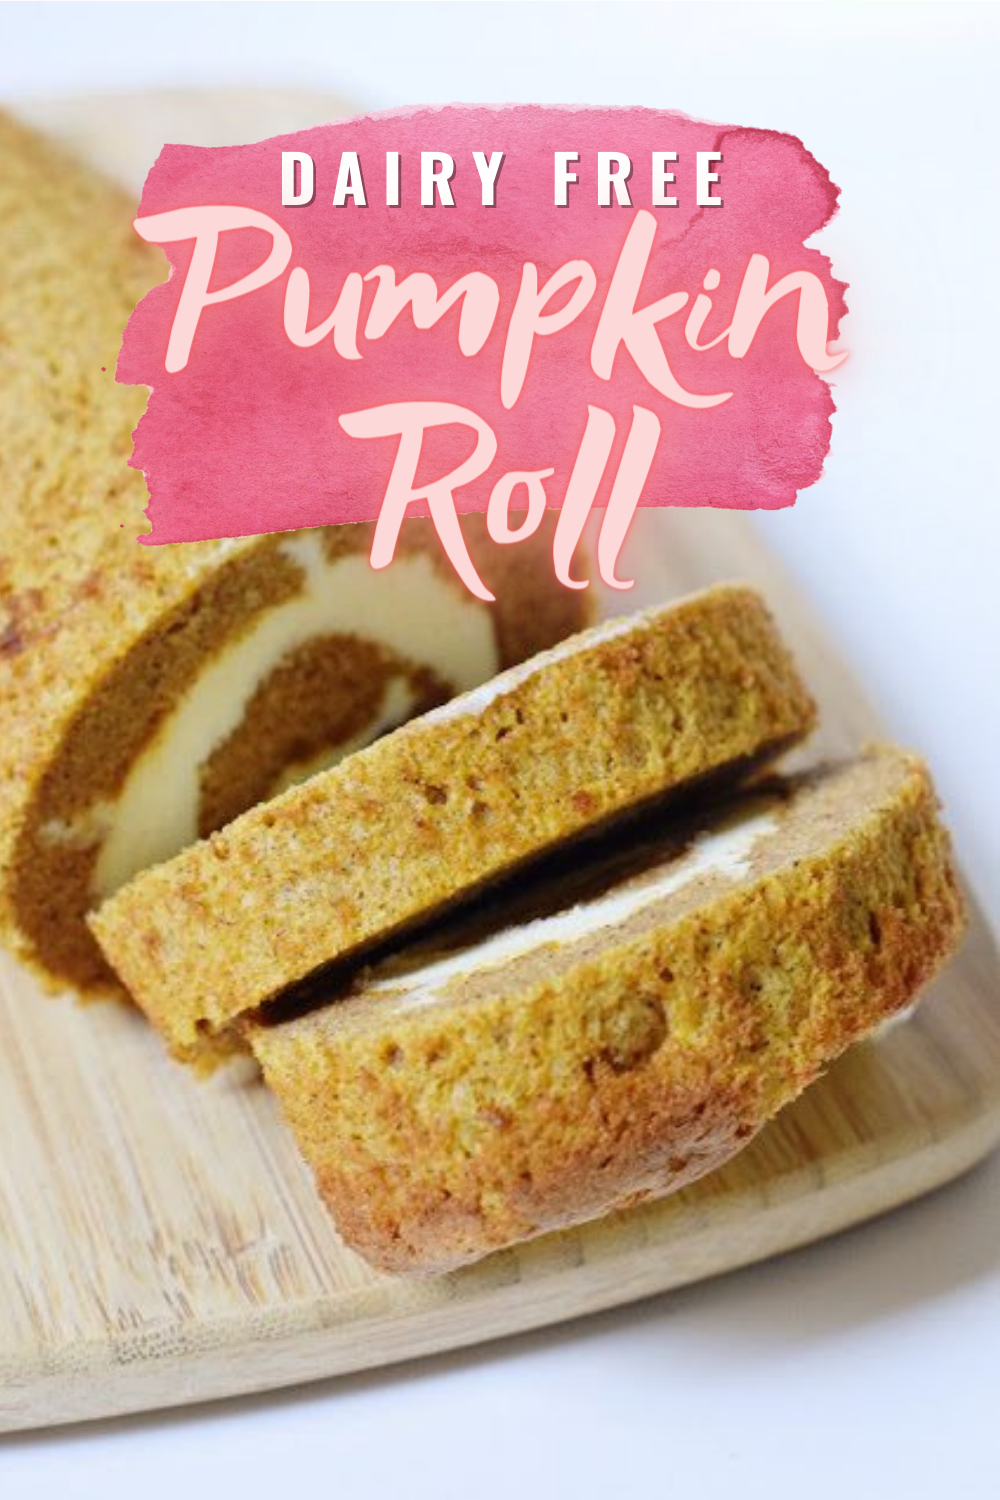 Dairy Free Pumpkin Roll - a delicious fall favorite that everyone can enjoy and NO ONE will know is gluten and dairy free! | Dairy Free Pumpkin Roll - Pumpkin Roll - Pumpkin Roll Recipe - Libbys Pumpkin Roll Dairy Free - Gluten Free Pumpkin Roll Recipe - Thanksgiving Pumpkin Recipe - Libby's Pumpkin Roll - Gluten Free Thanksgiving - Dairy Free Dessert Recipe